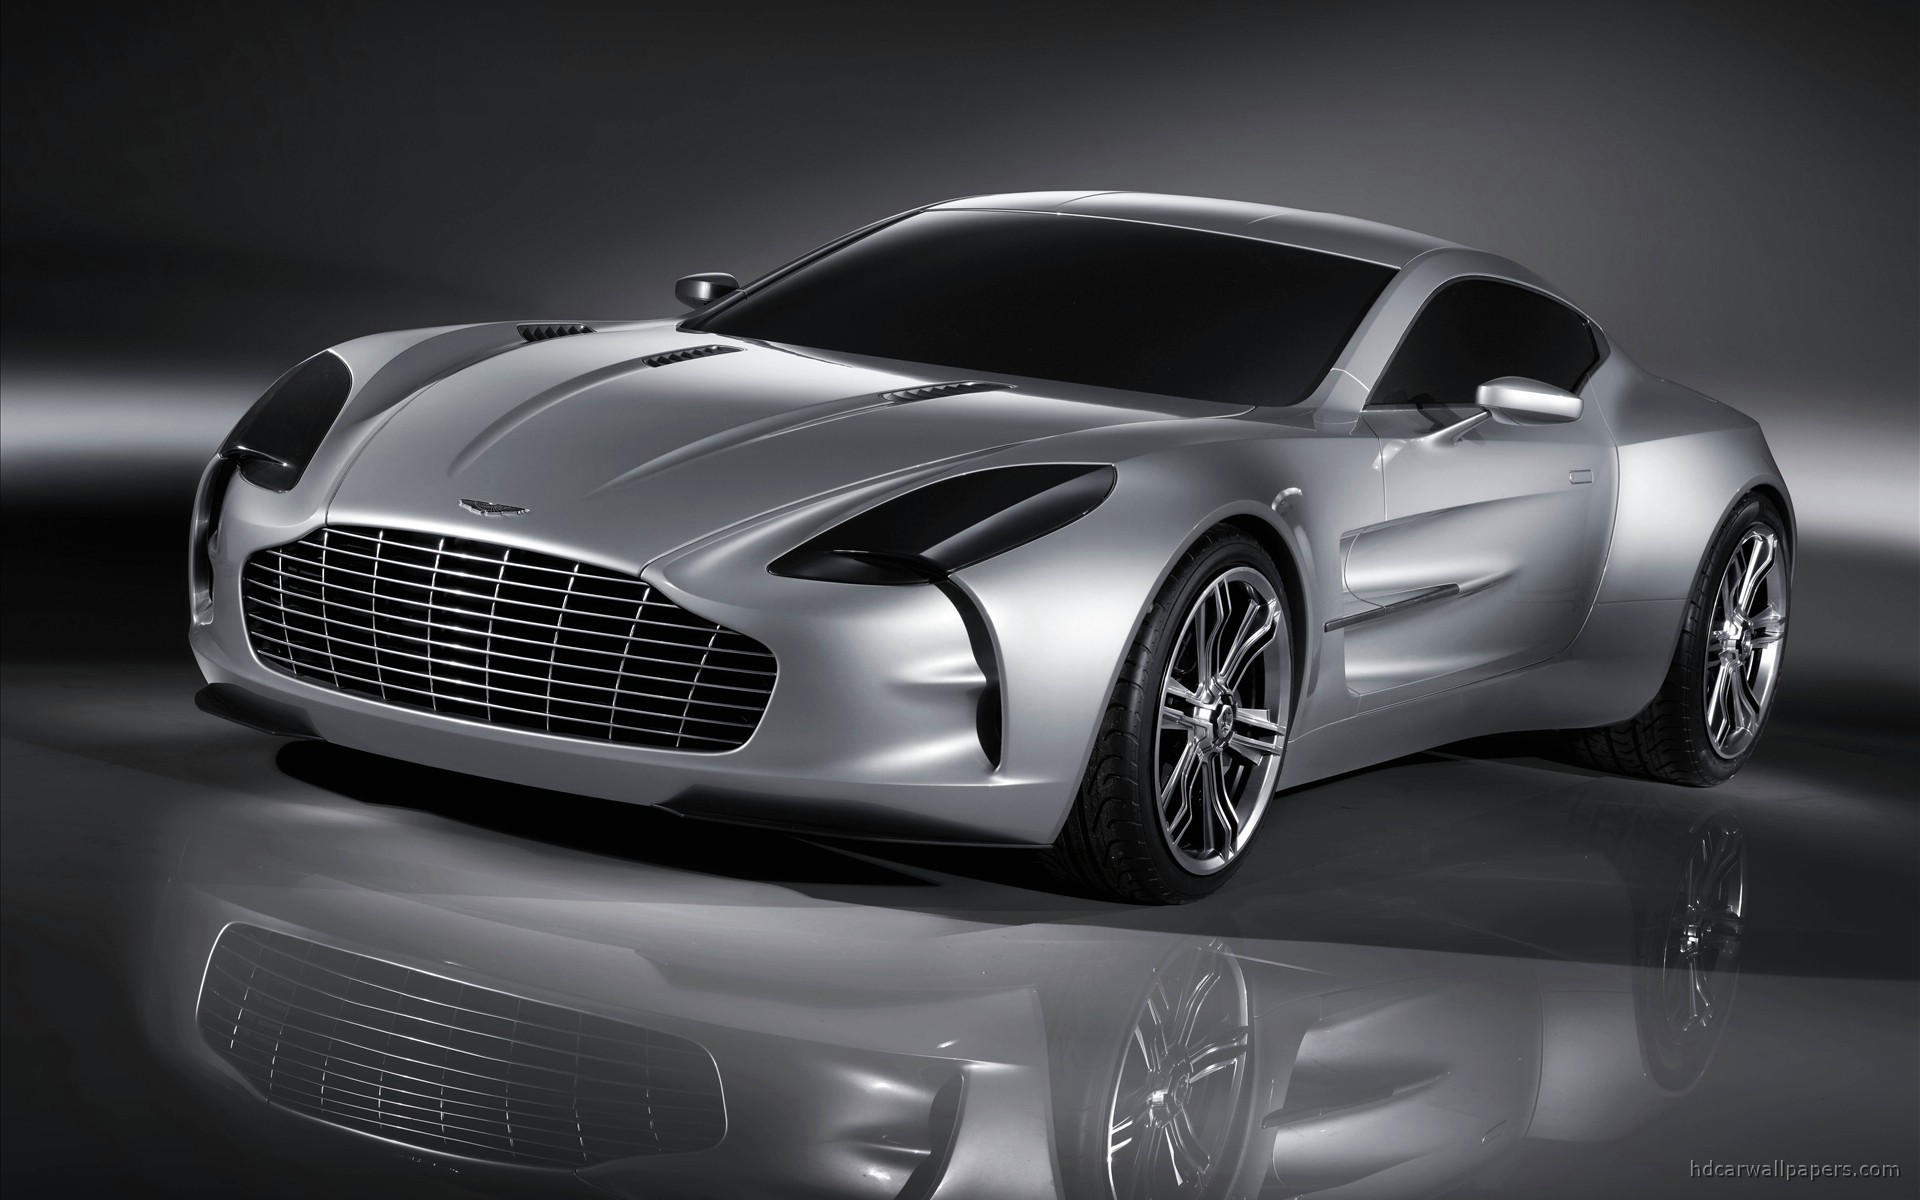 2010 Aston Martin One 77 3 Wallpaper | HD Car Wallpapers | ID #48